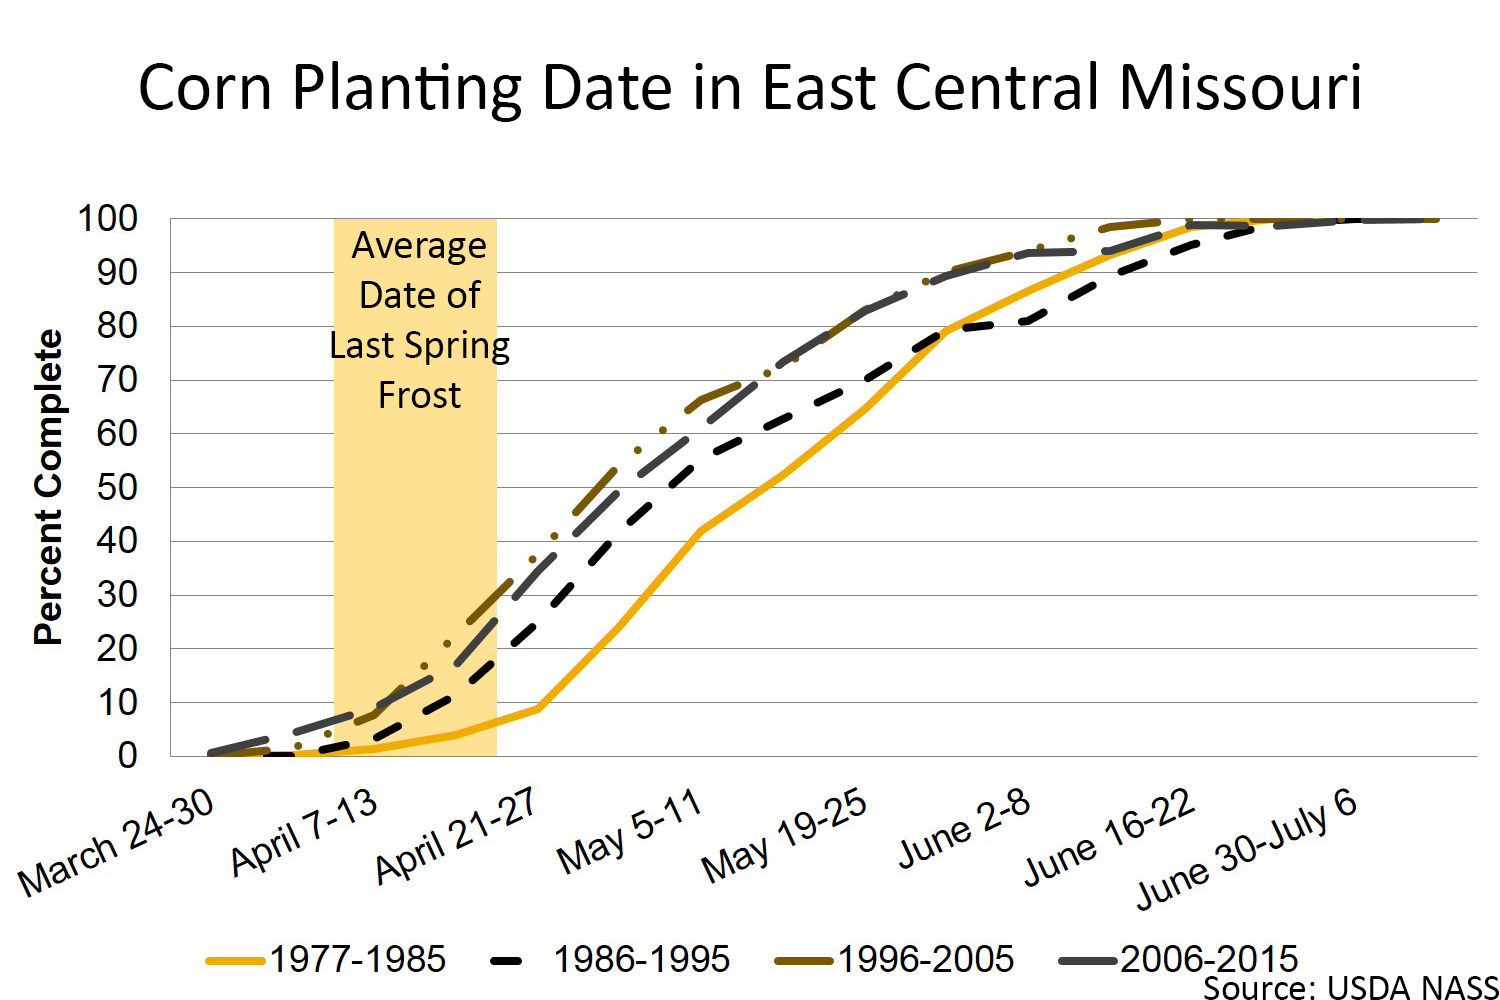 Corn planting date in east central Missouri chart